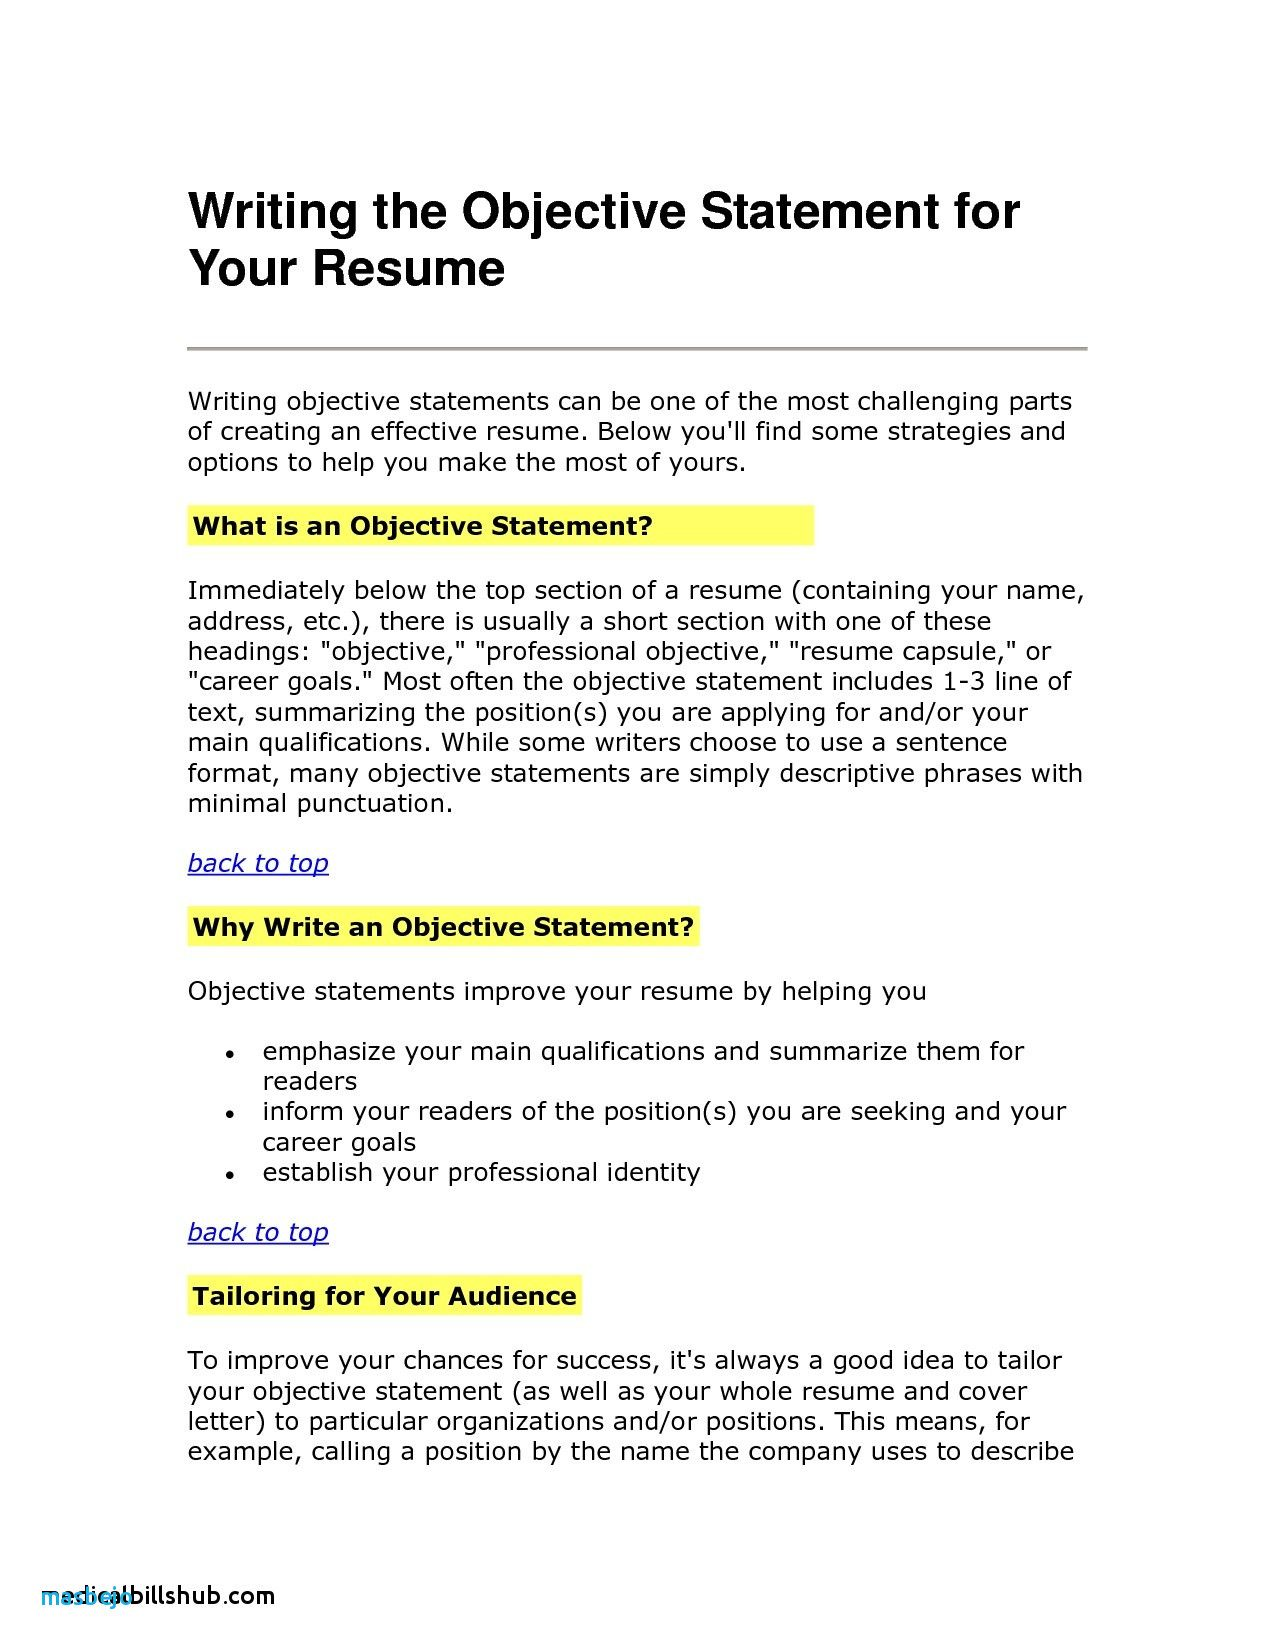 Help with dissertation writing your cv